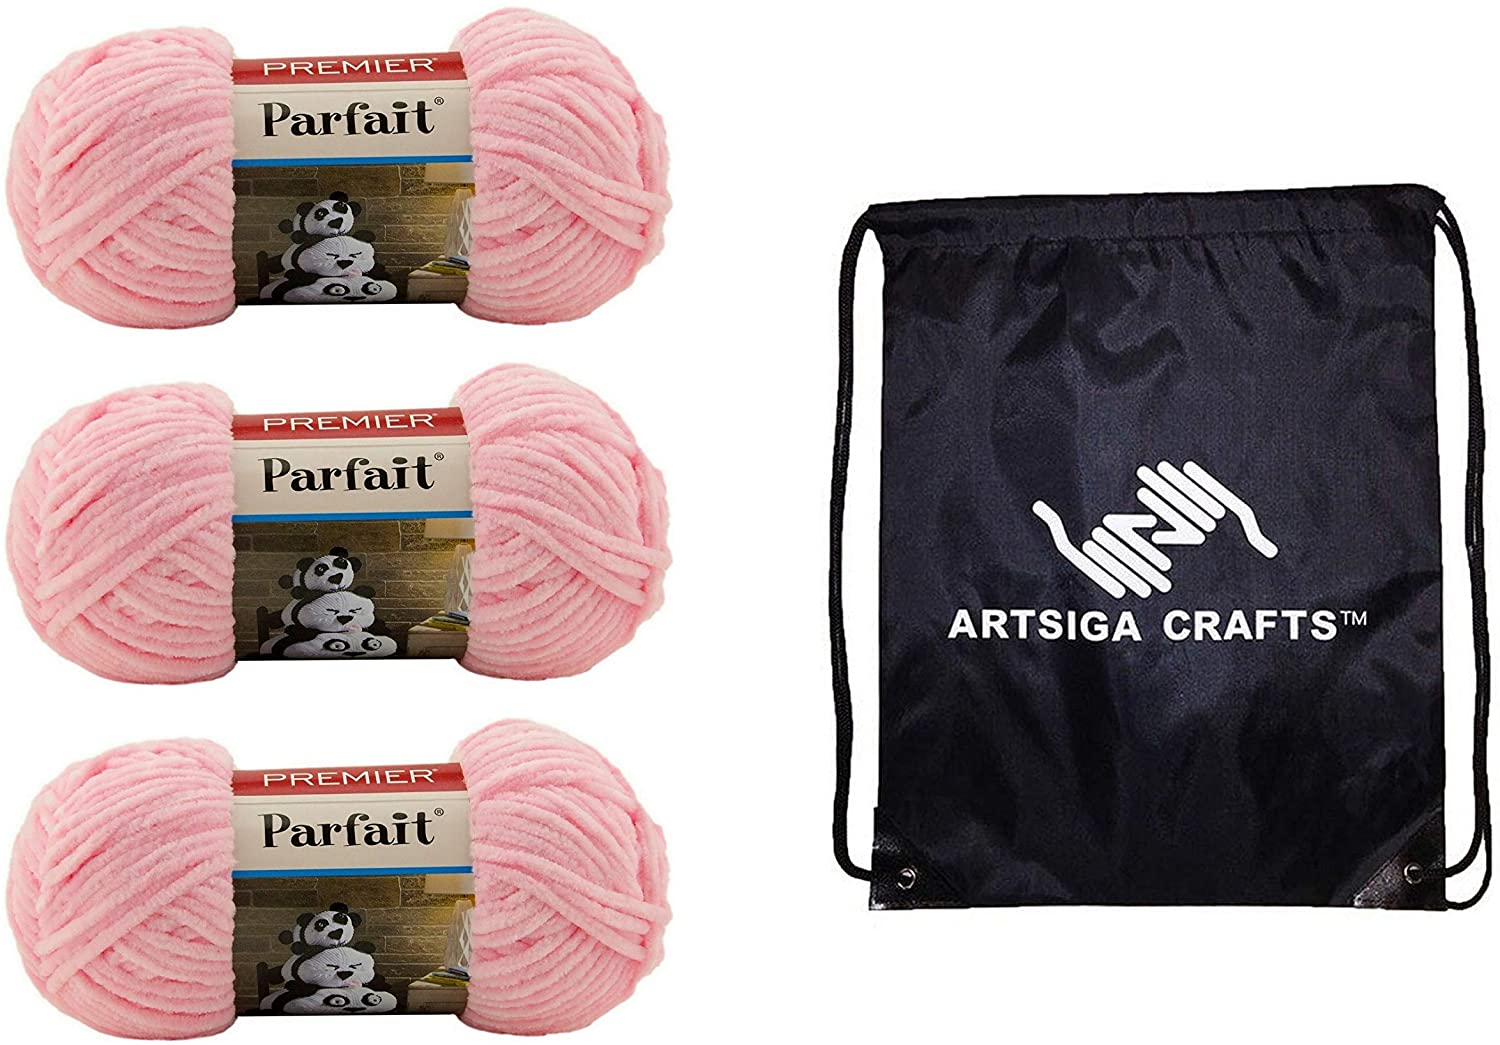 Premier Knitting Yarn Parfait Solid Pink 3-Skein Factory Pack (Same Dye Lot) 30-25 Bundle with 1 Artsiga Crafts Project Bag